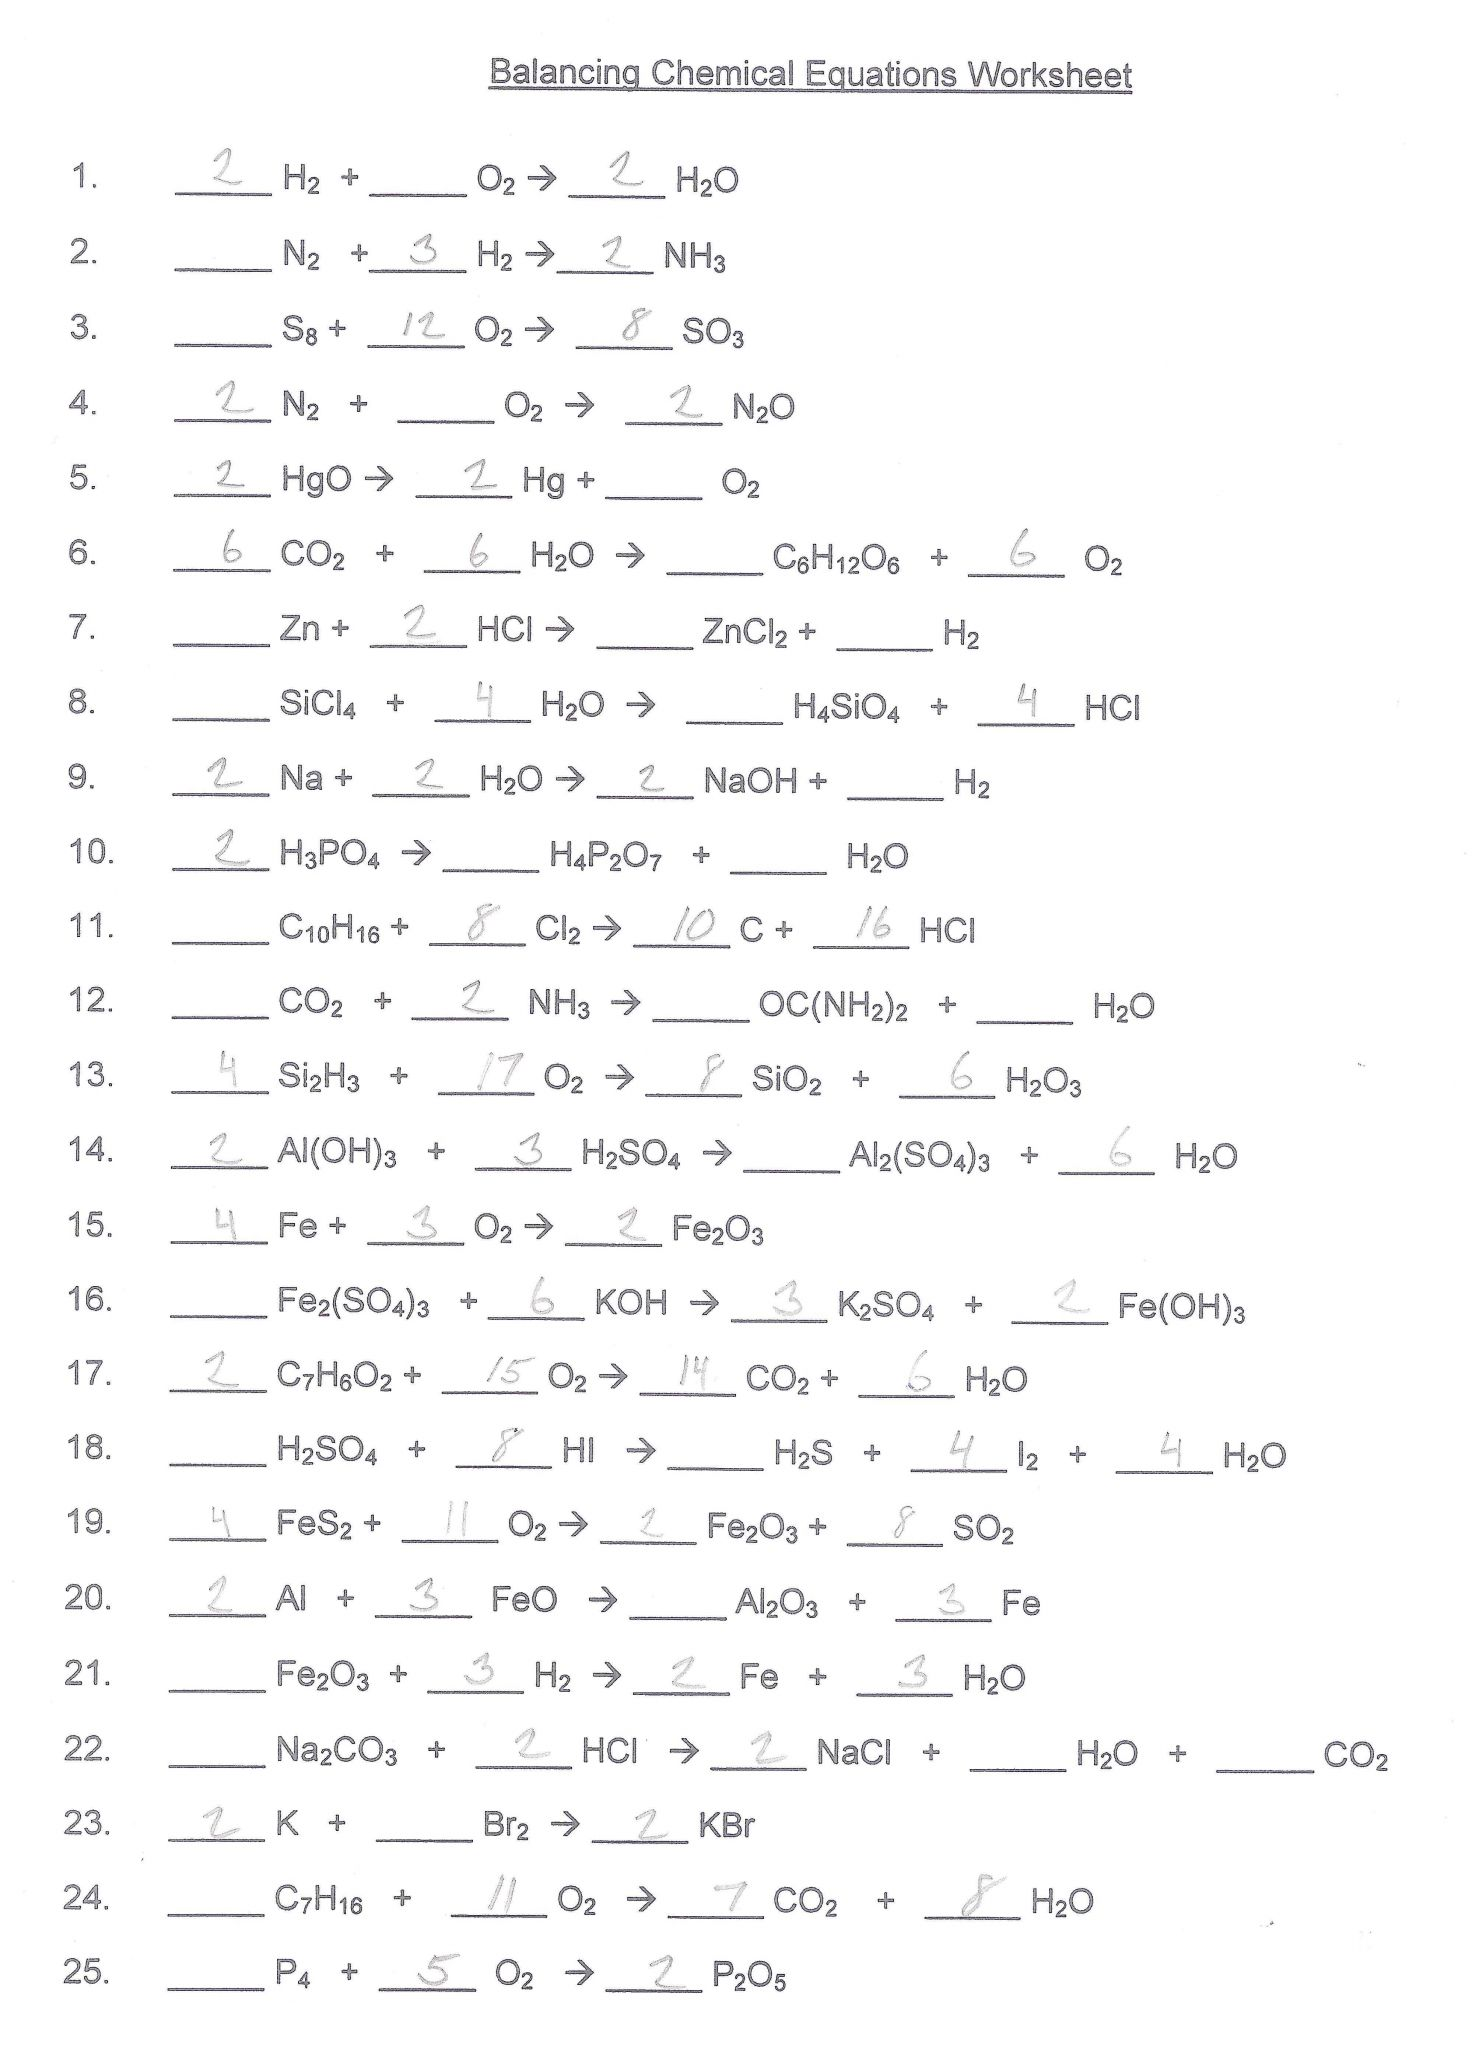 Types Of Chemical Reactions Worksheet Answers Also Balancing Chemical Equations Worksheet Answer Key